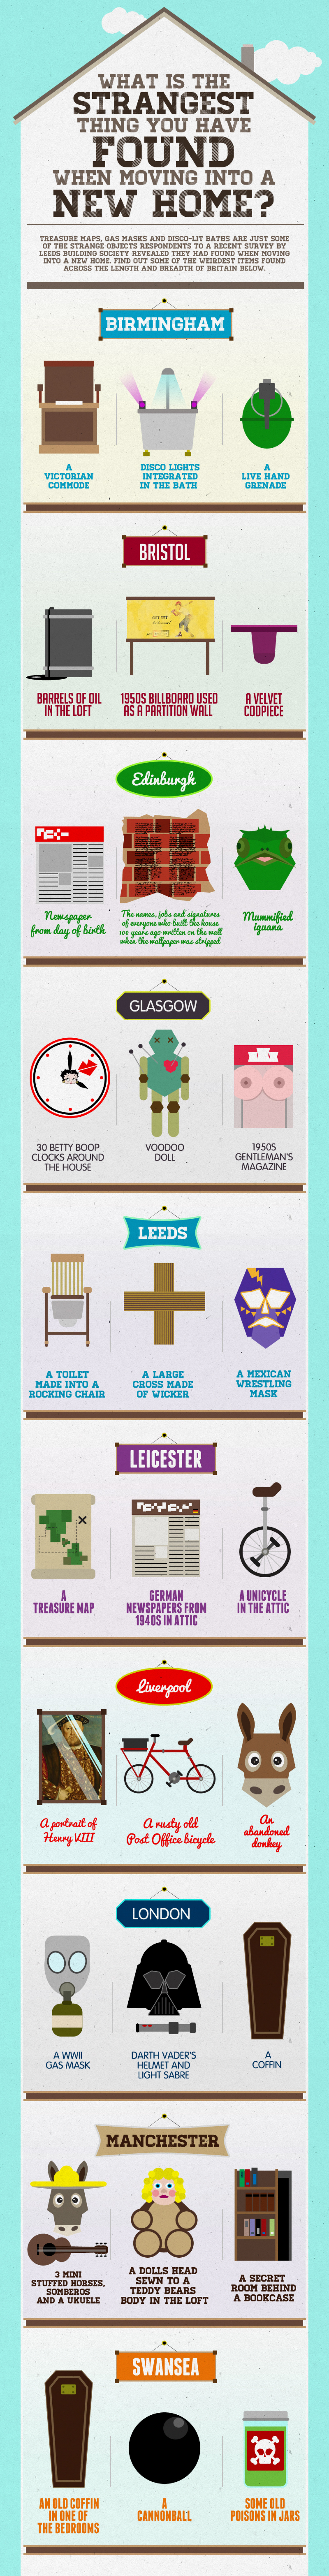 Strangest Things Found in New Homes Infographic